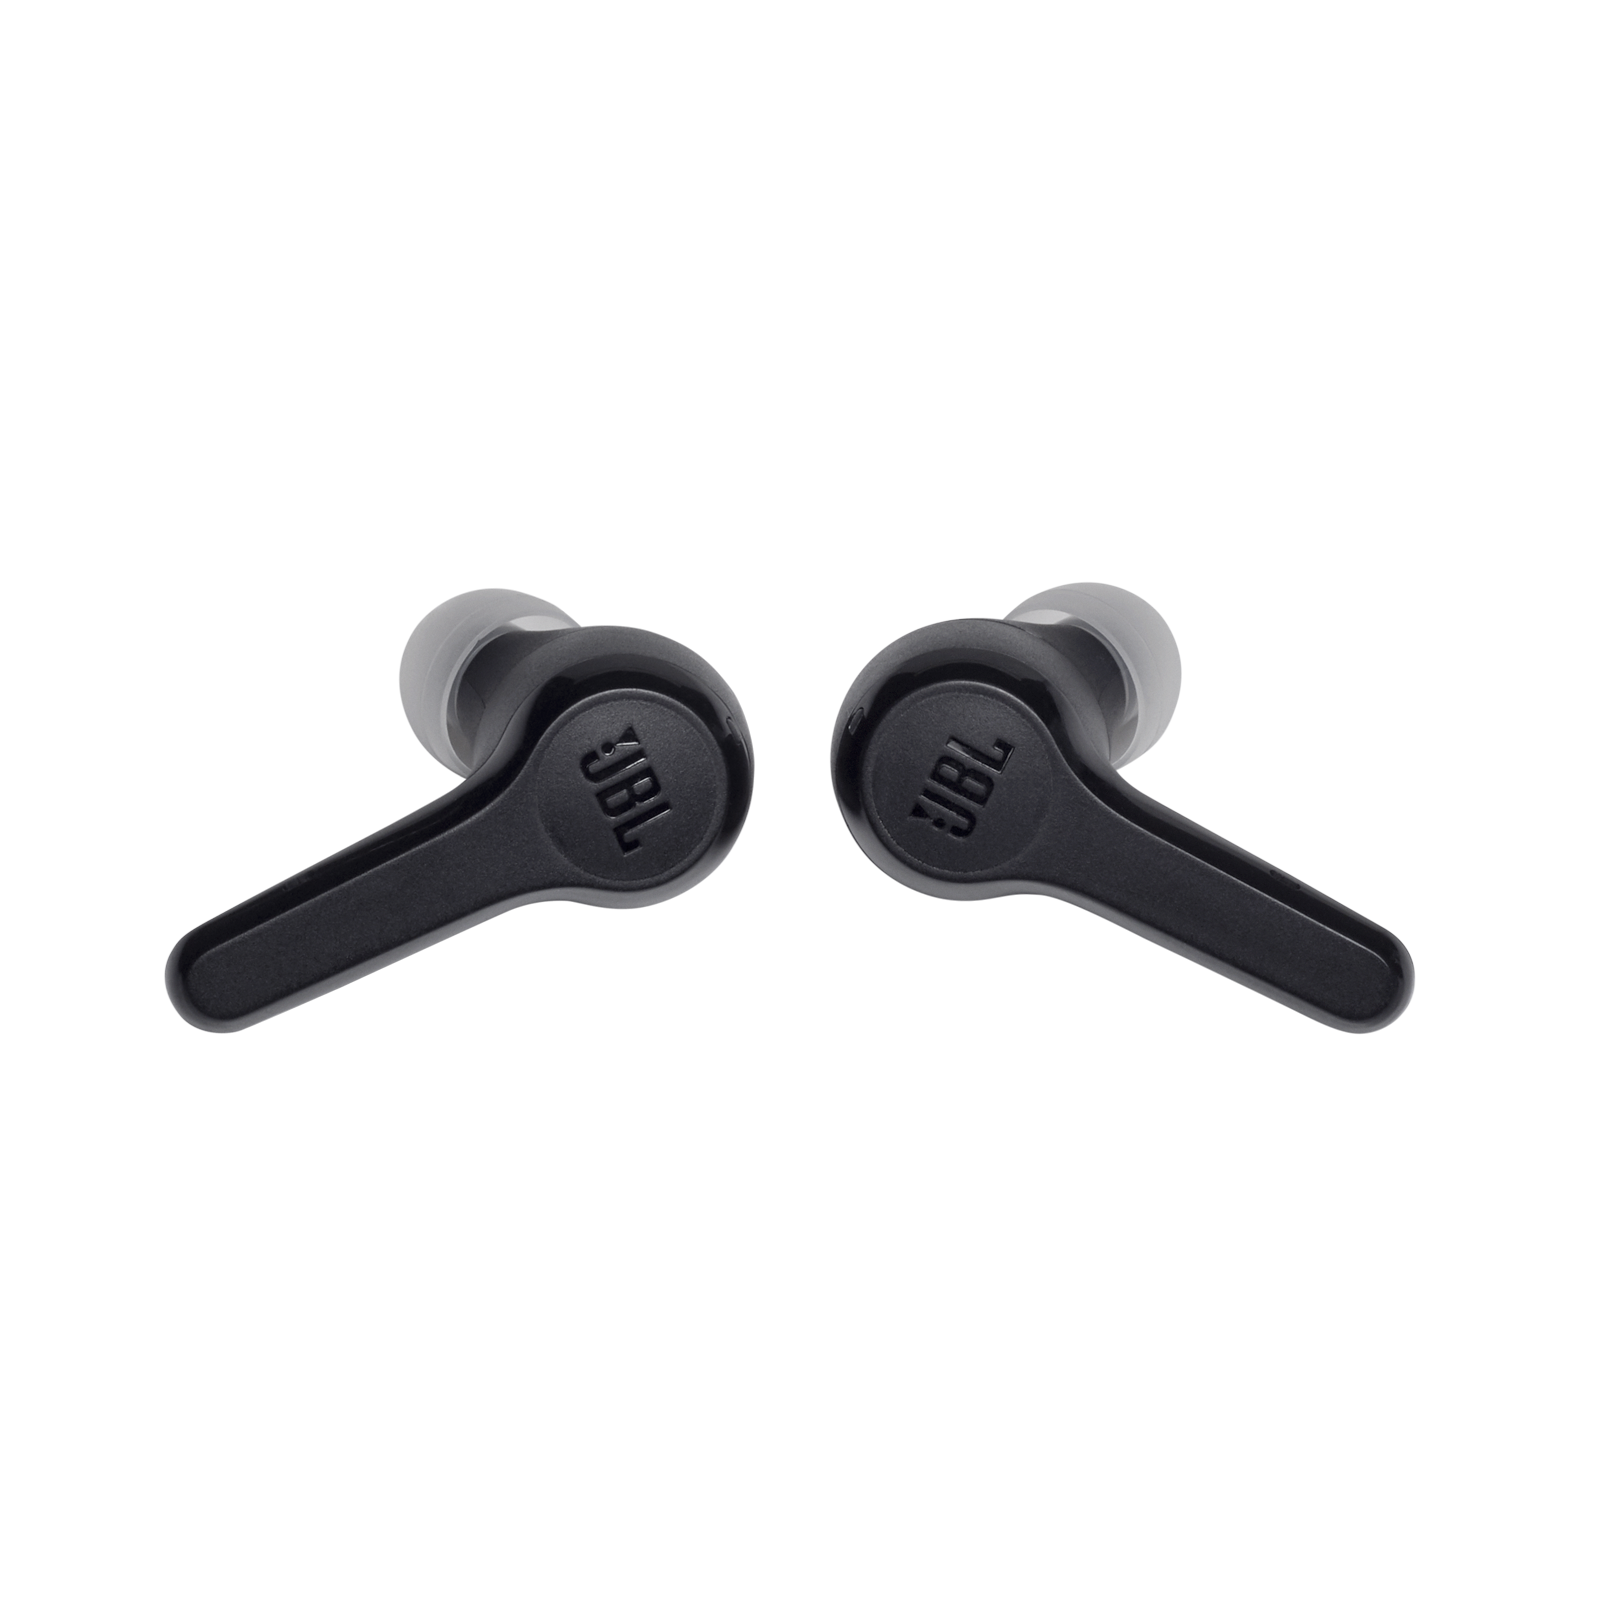 JBL Tune 215TWS - Black - True wireless earbud headphones - Detailshot 3